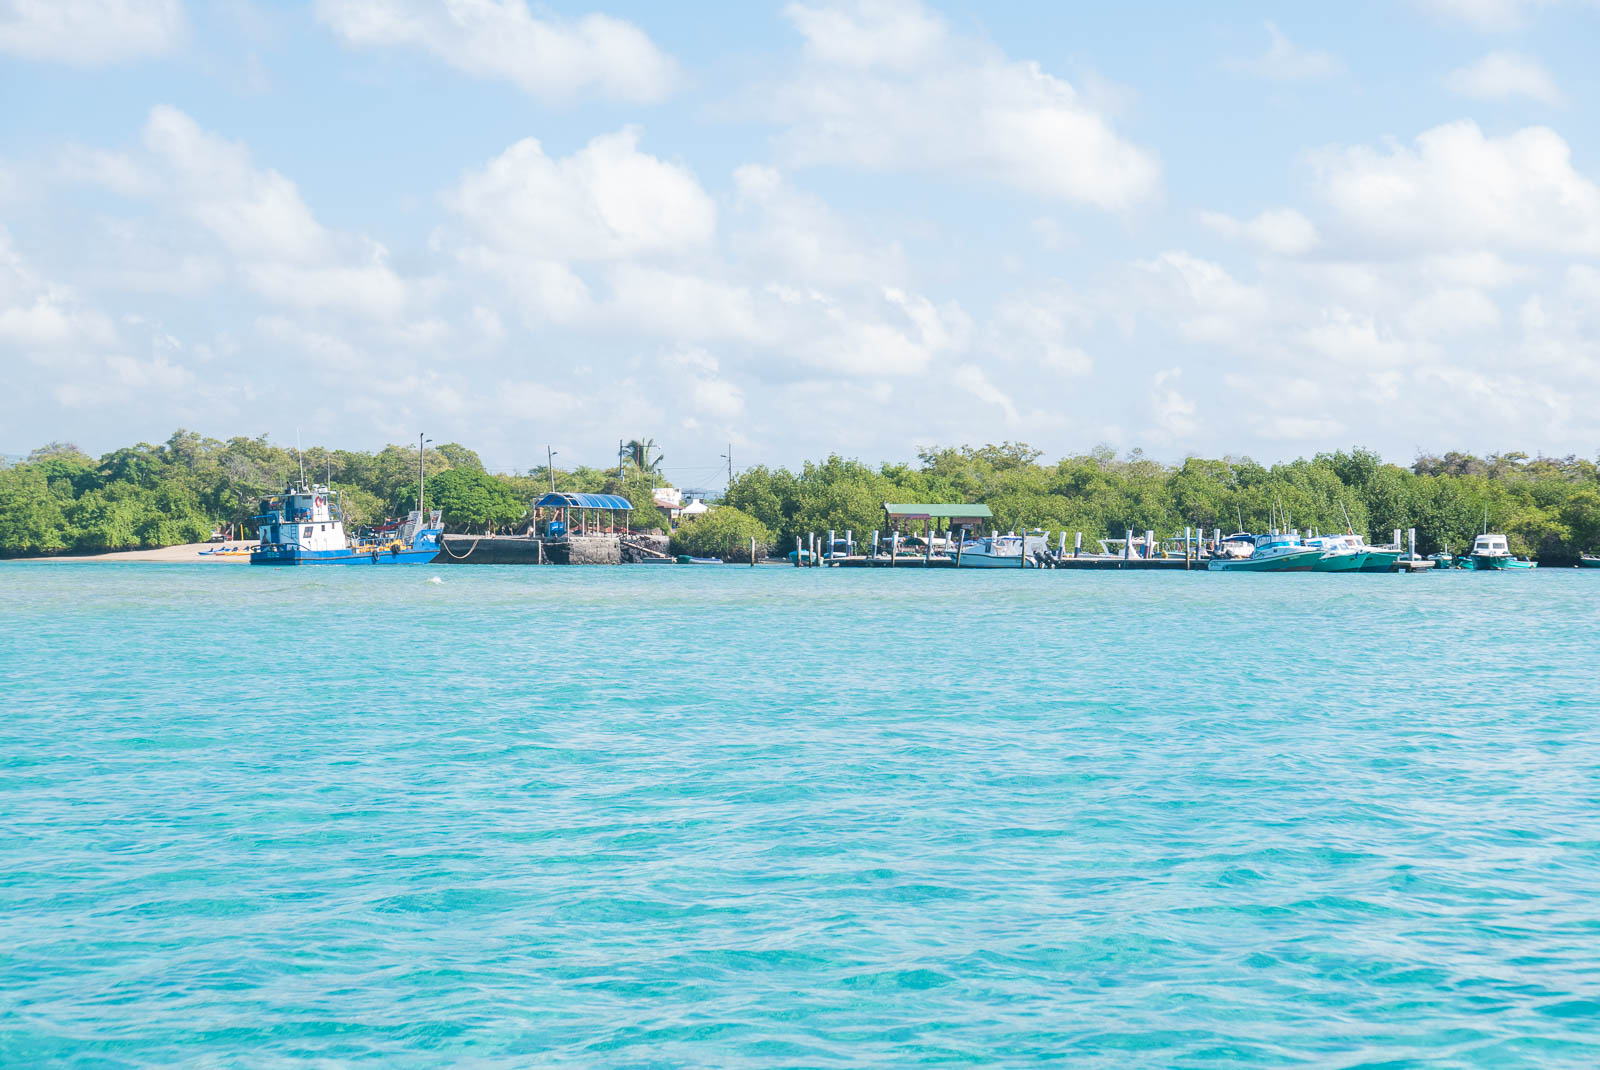 The amazing turquoise waters of Galapagos Islands with a harbour in the background.